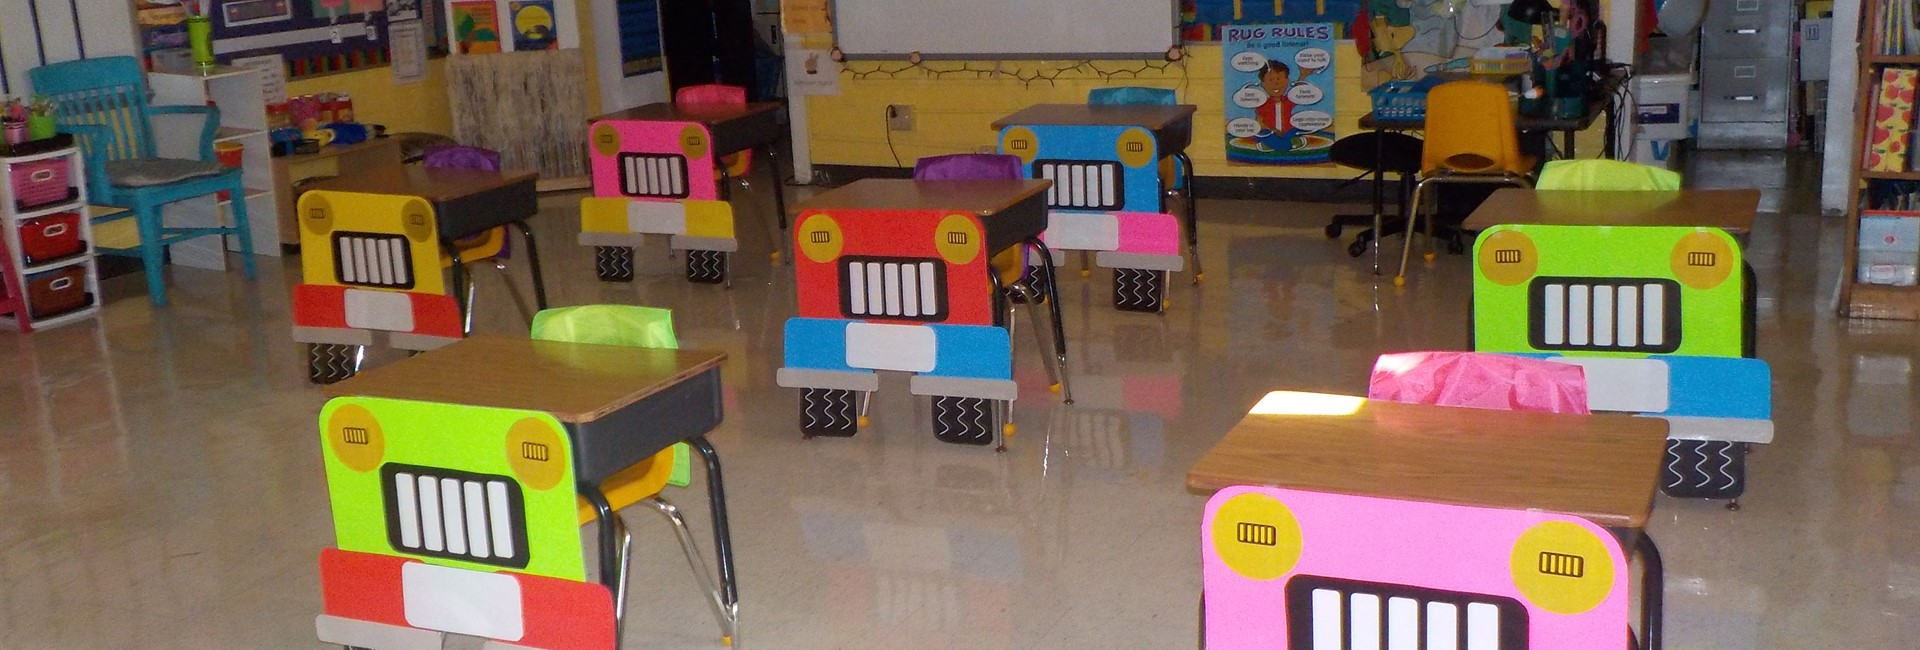 Beep Beep! Mrs. Brooks class is ready to learn!